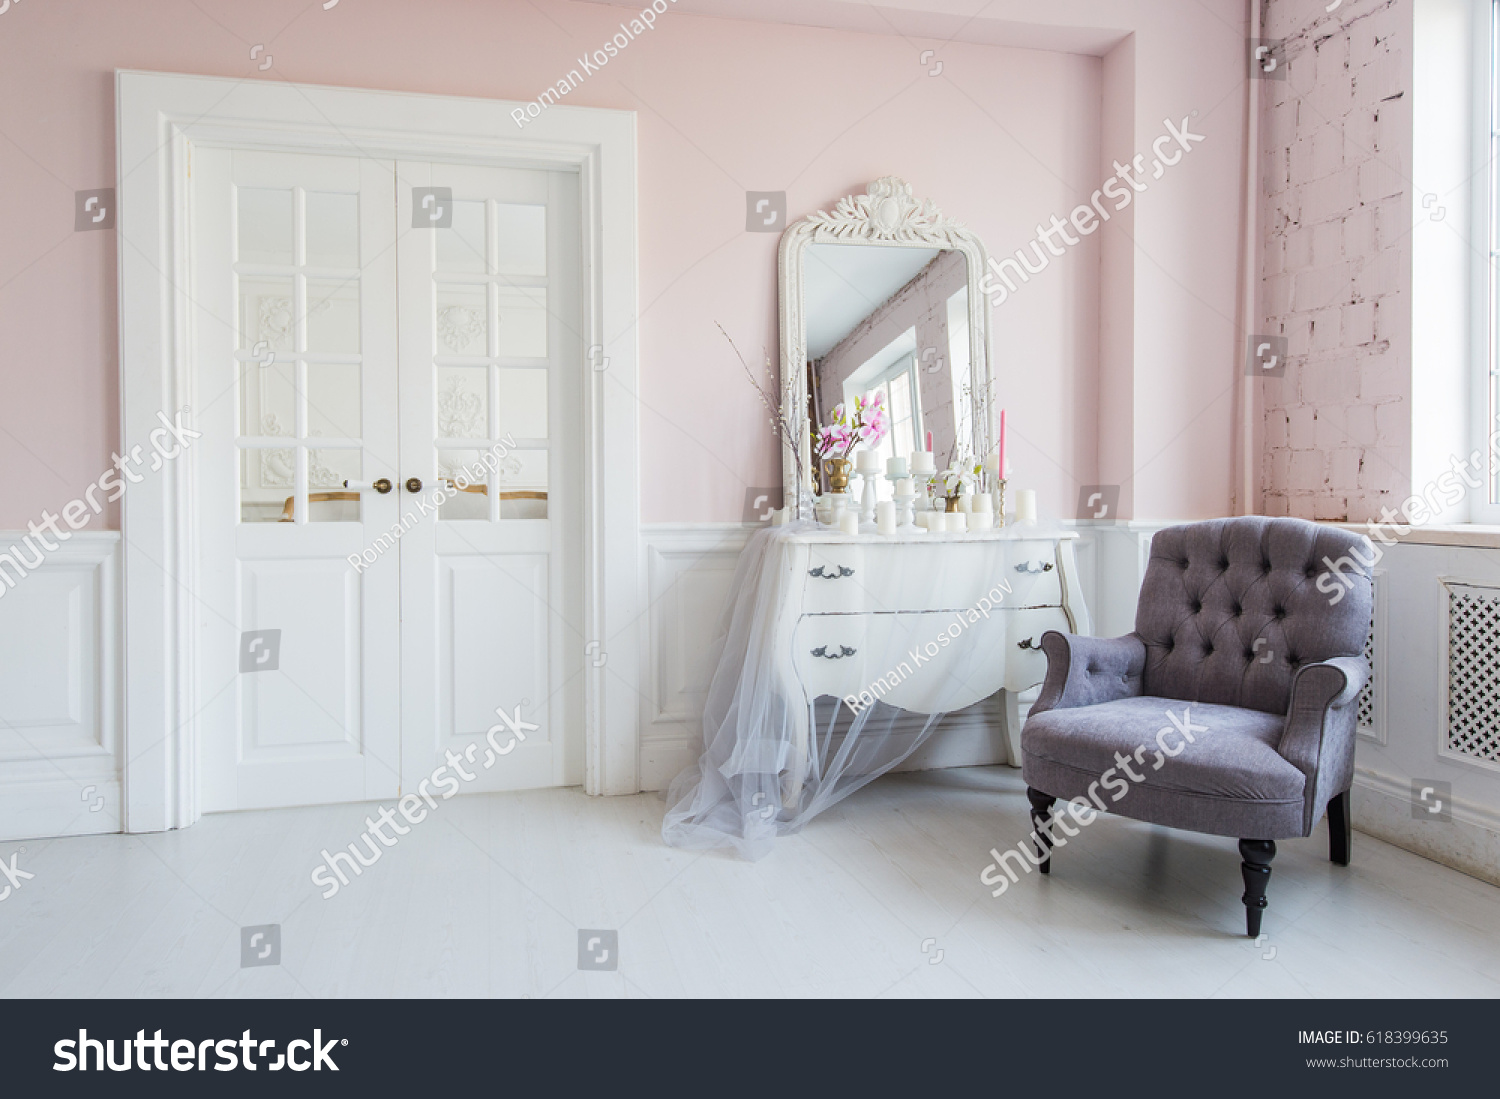 Classical Armchair Mirror Table Living Room Stock Photo 618399635 ...